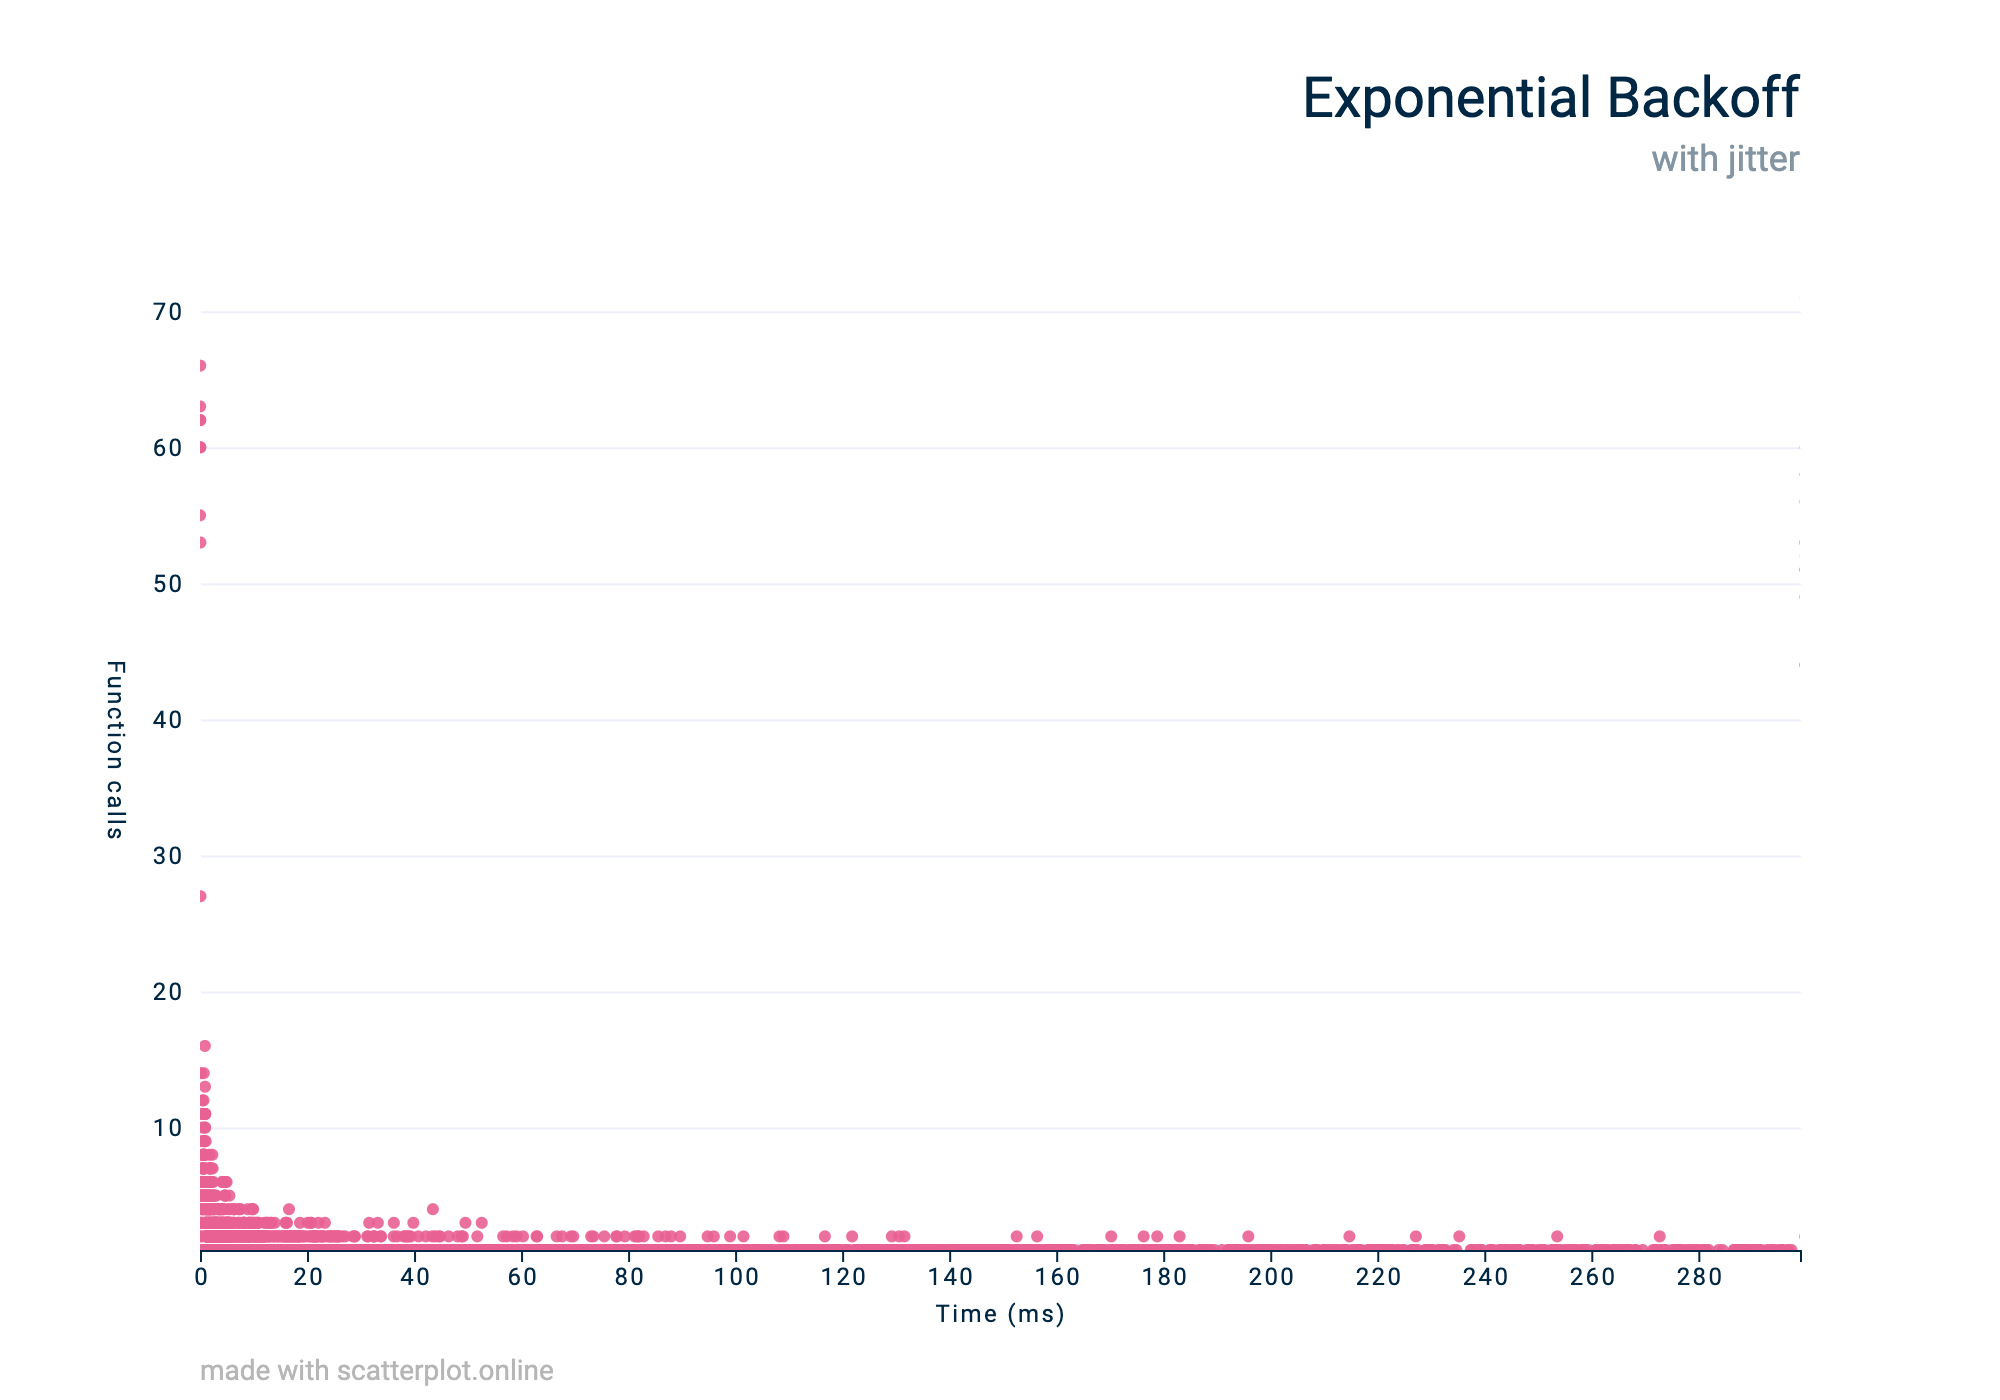 An exponential backoff traffic pattern visualised